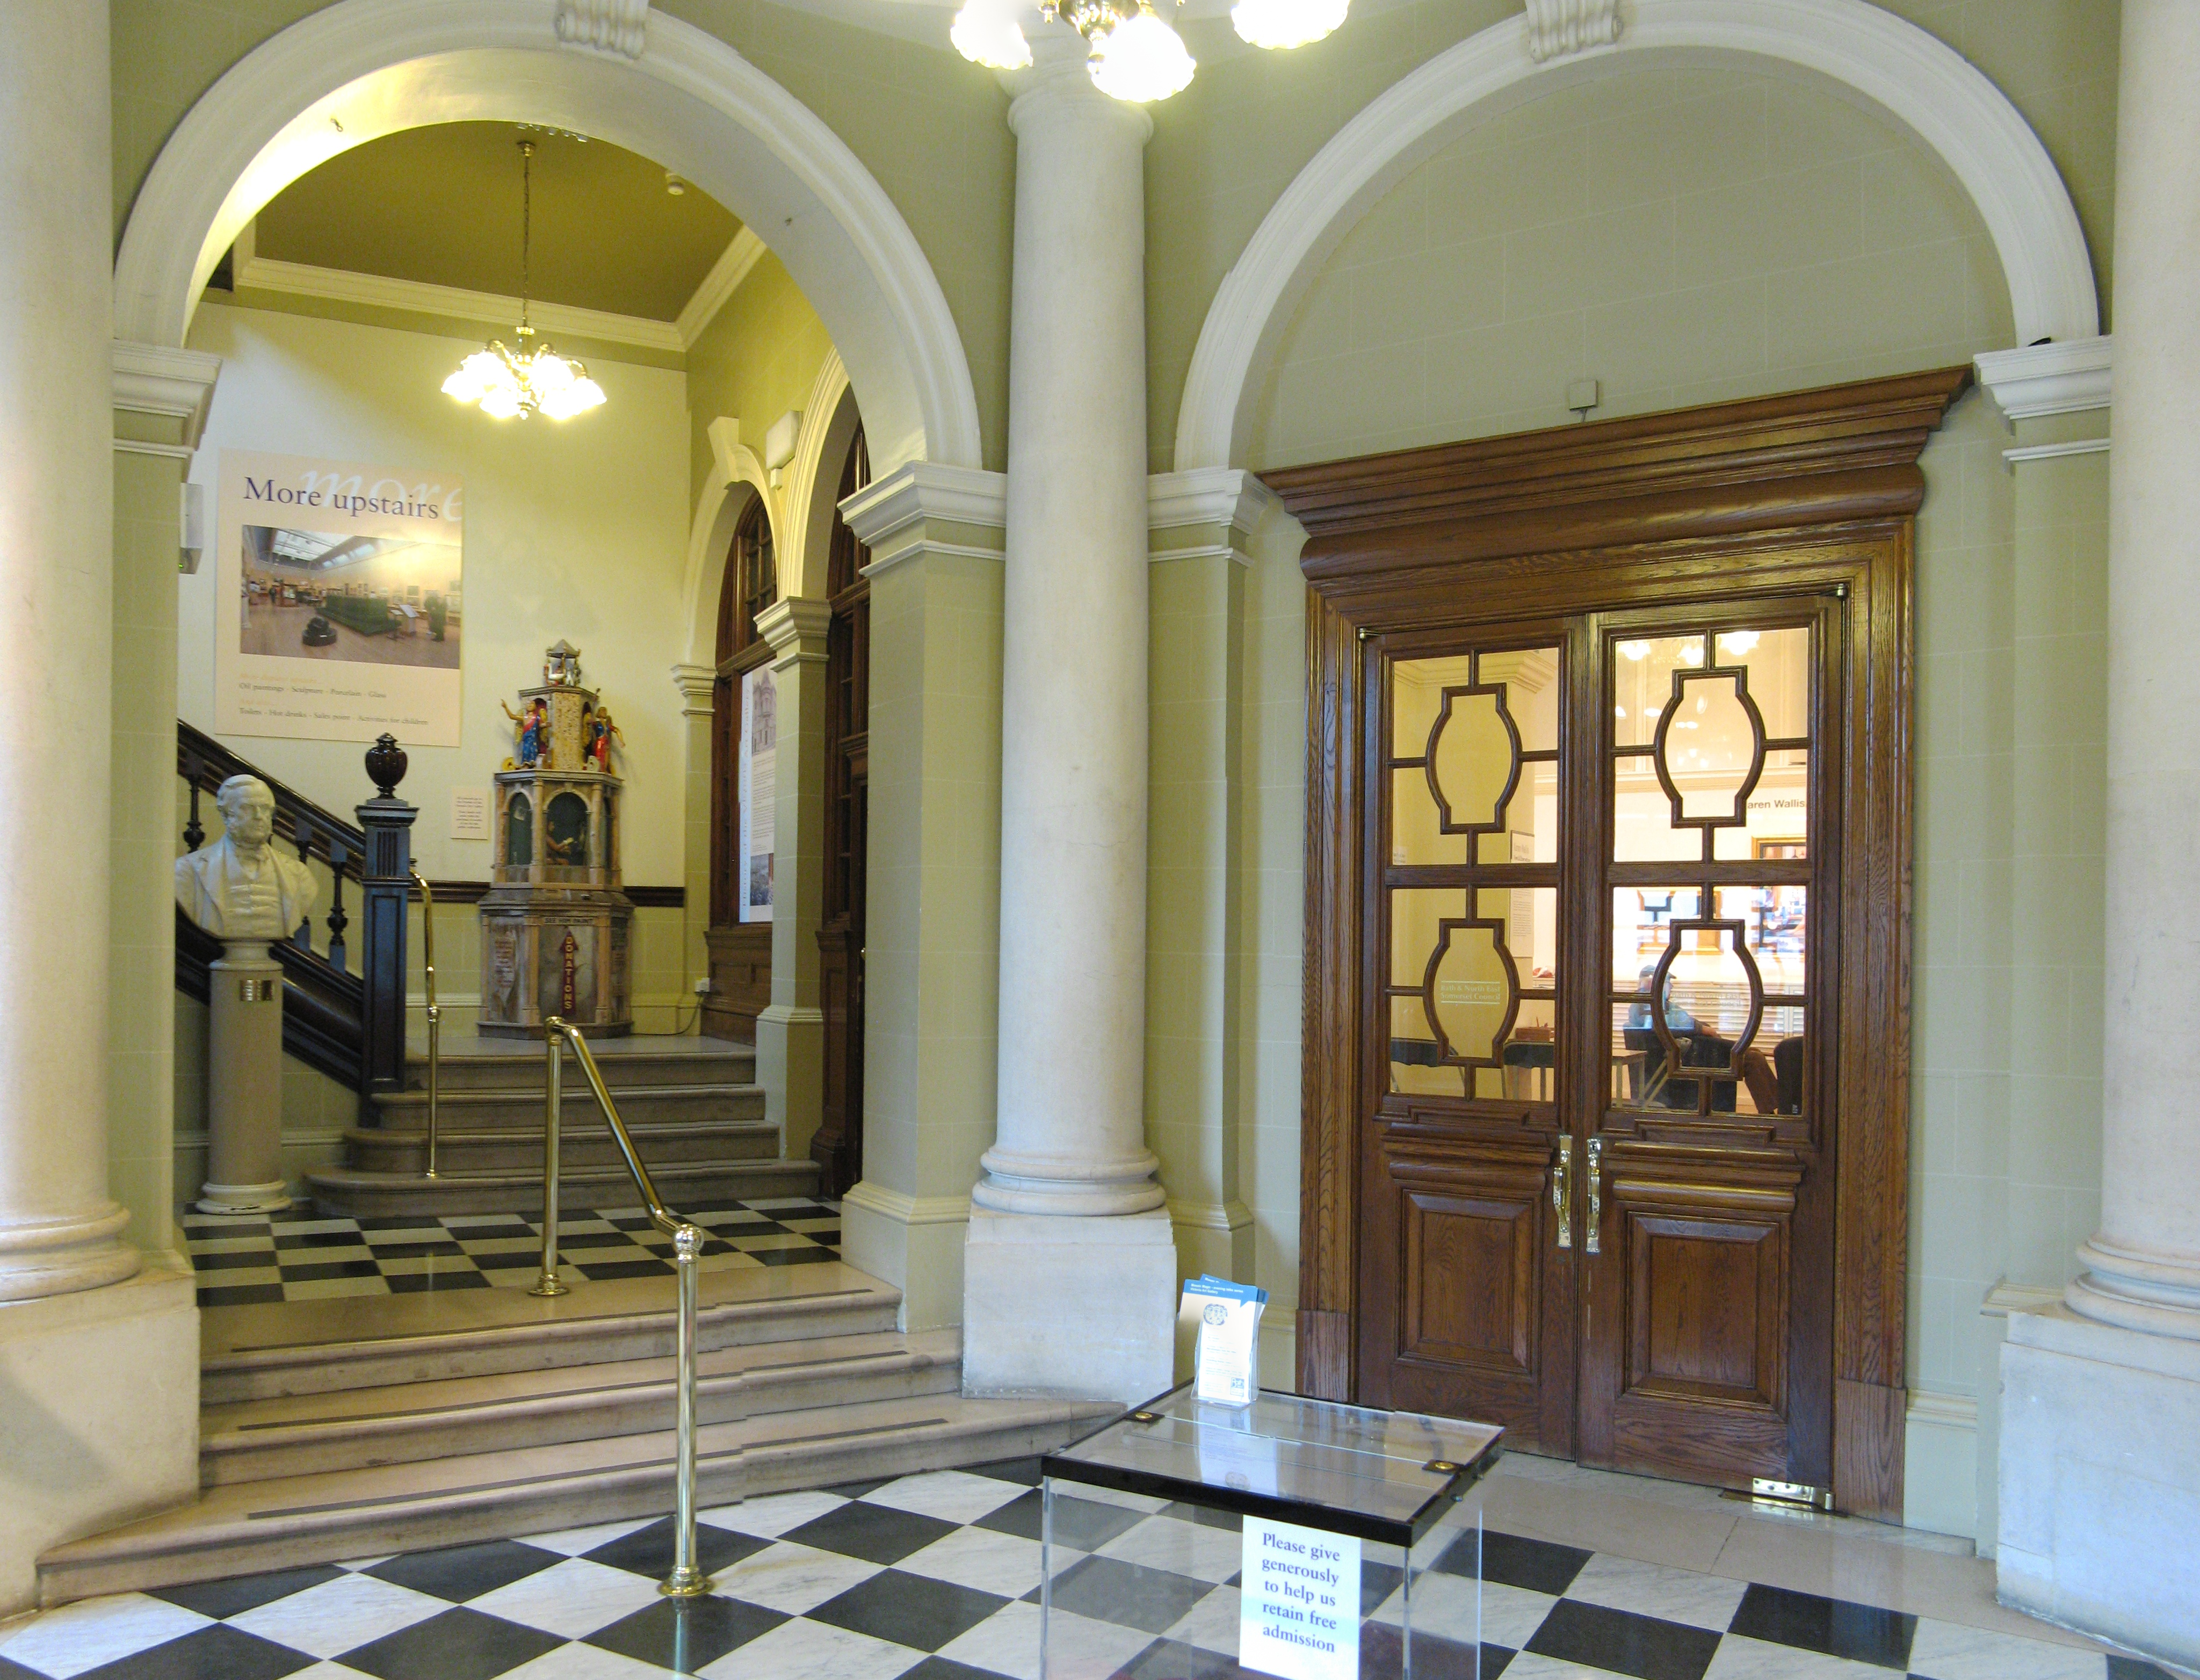 Foyer Artwork : File victoria art gallery bath foyer g wikimedia commons